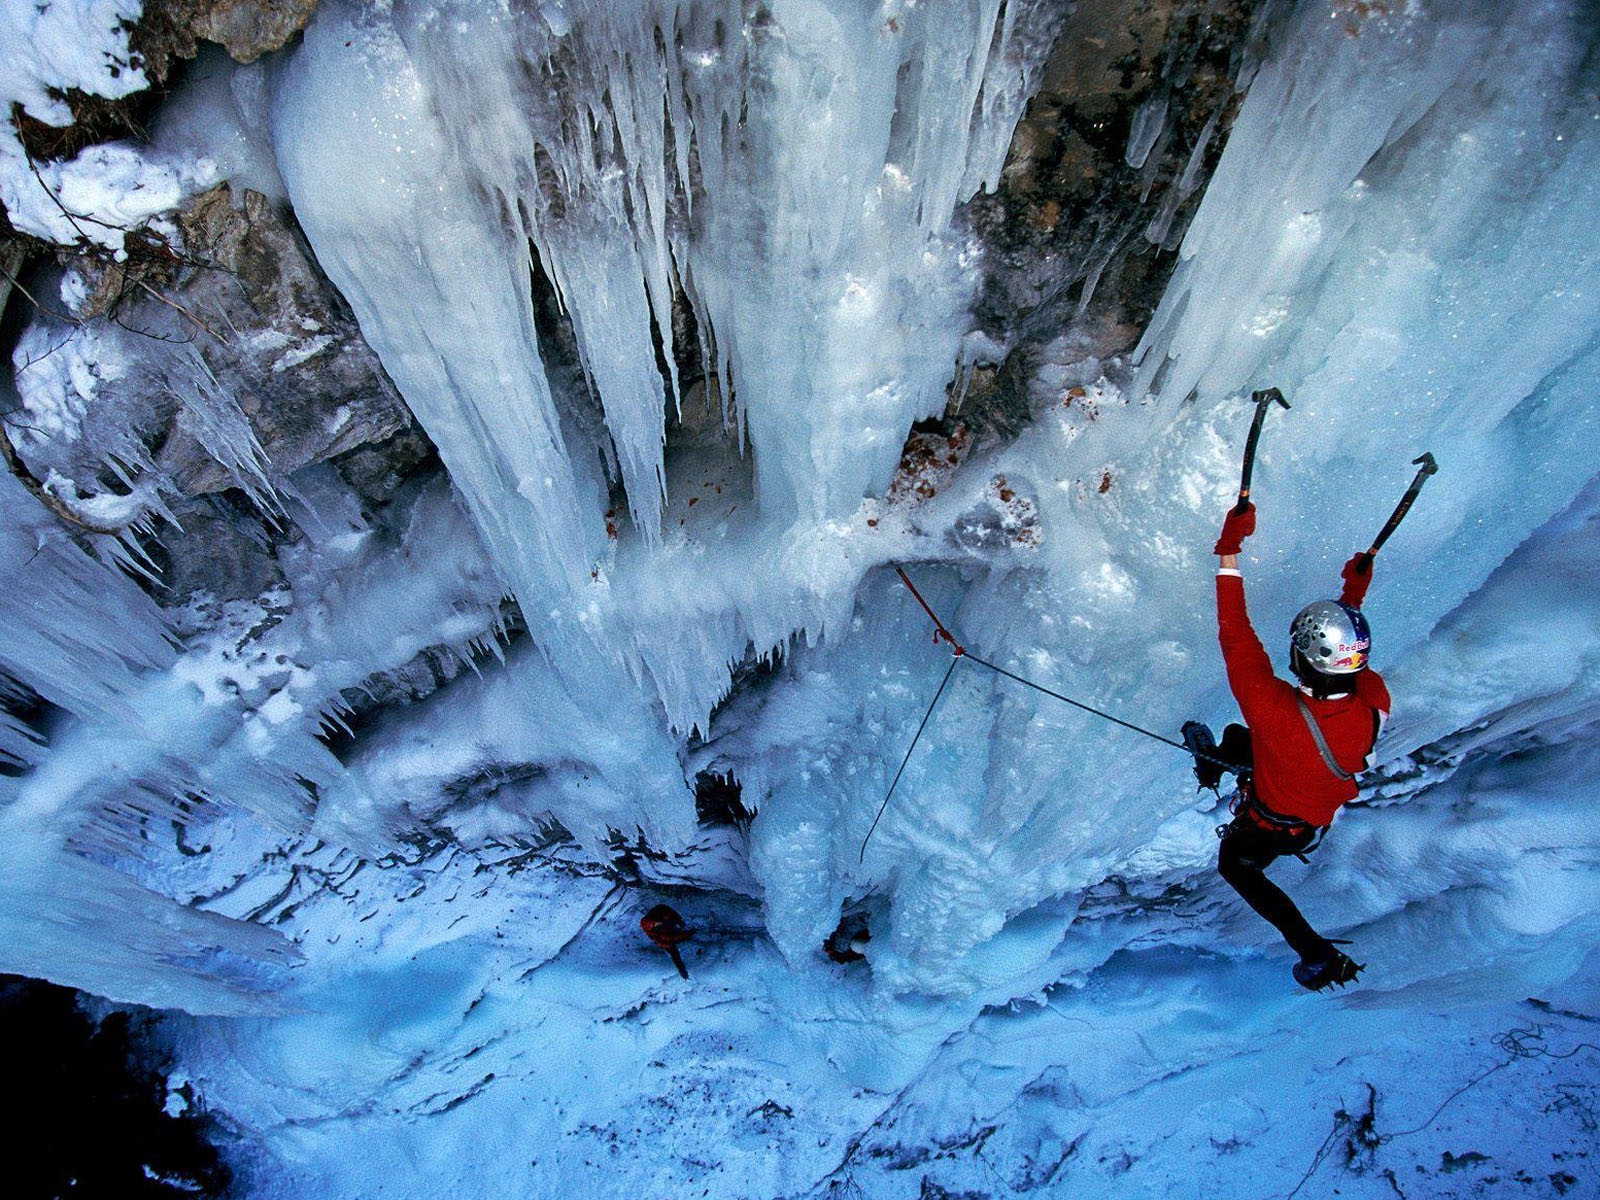 ice climbing wallpaper - photo #3